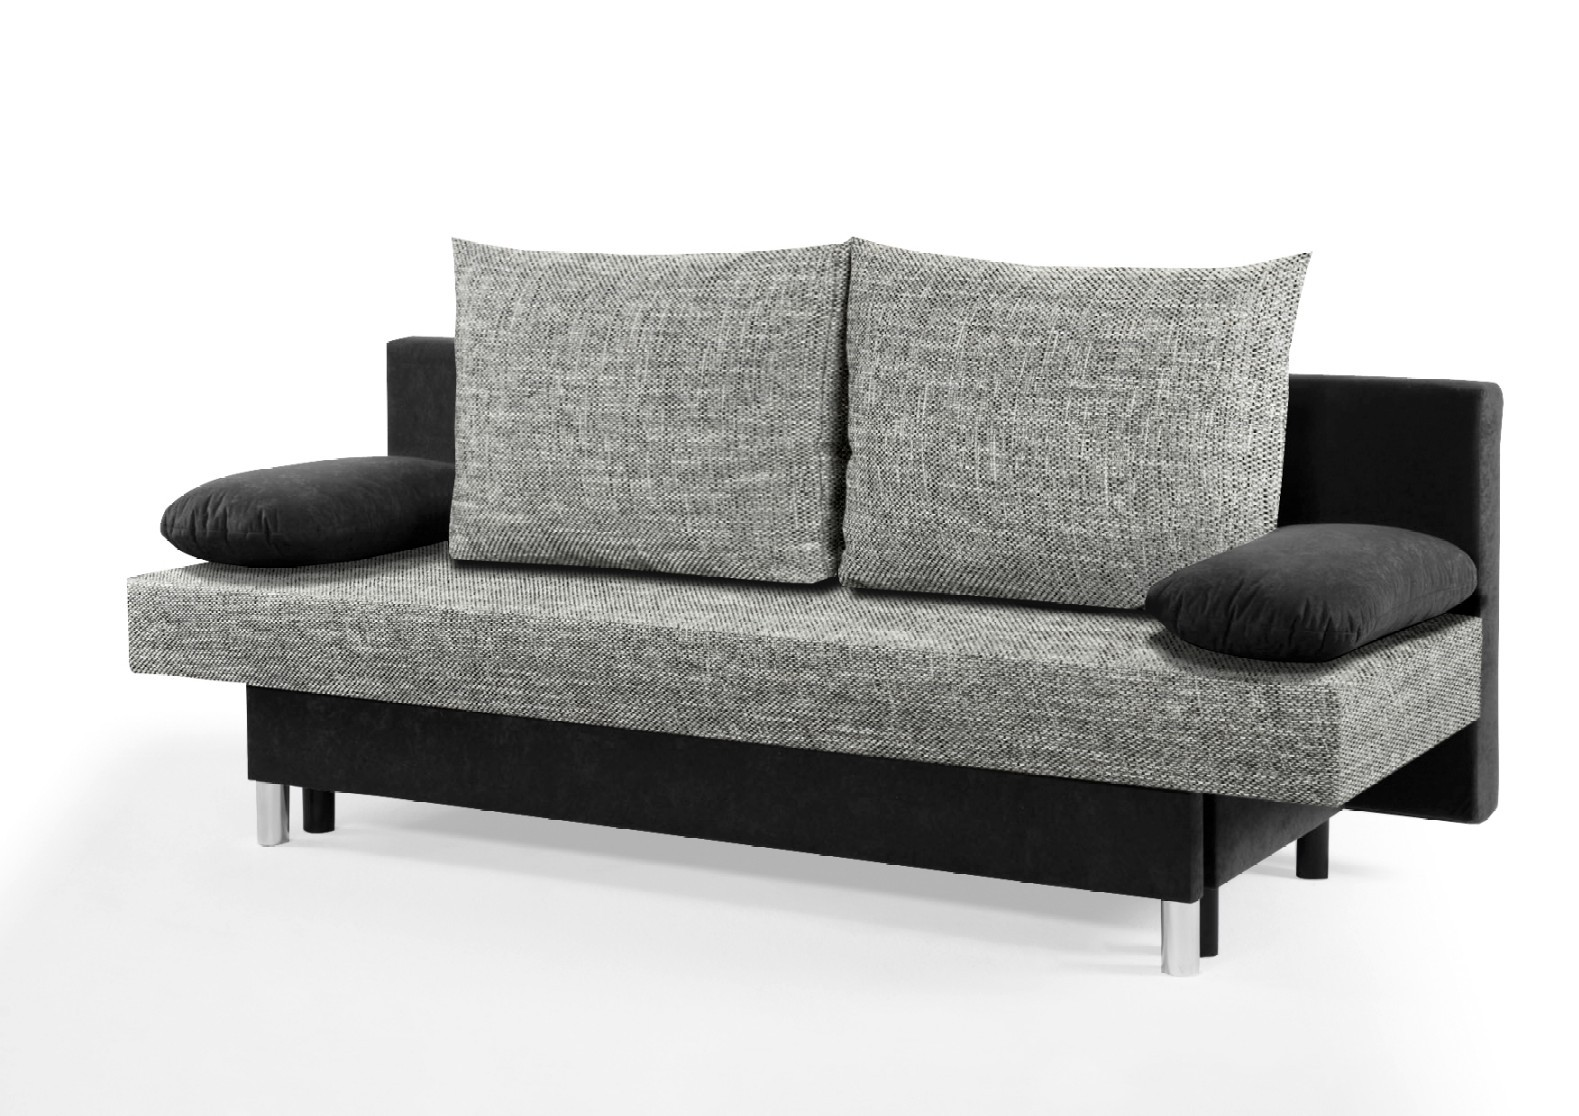 schlafsofa 160x200 liegeflche affordable schlafsofa. Black Bedroom Furniture Sets. Home Design Ideas